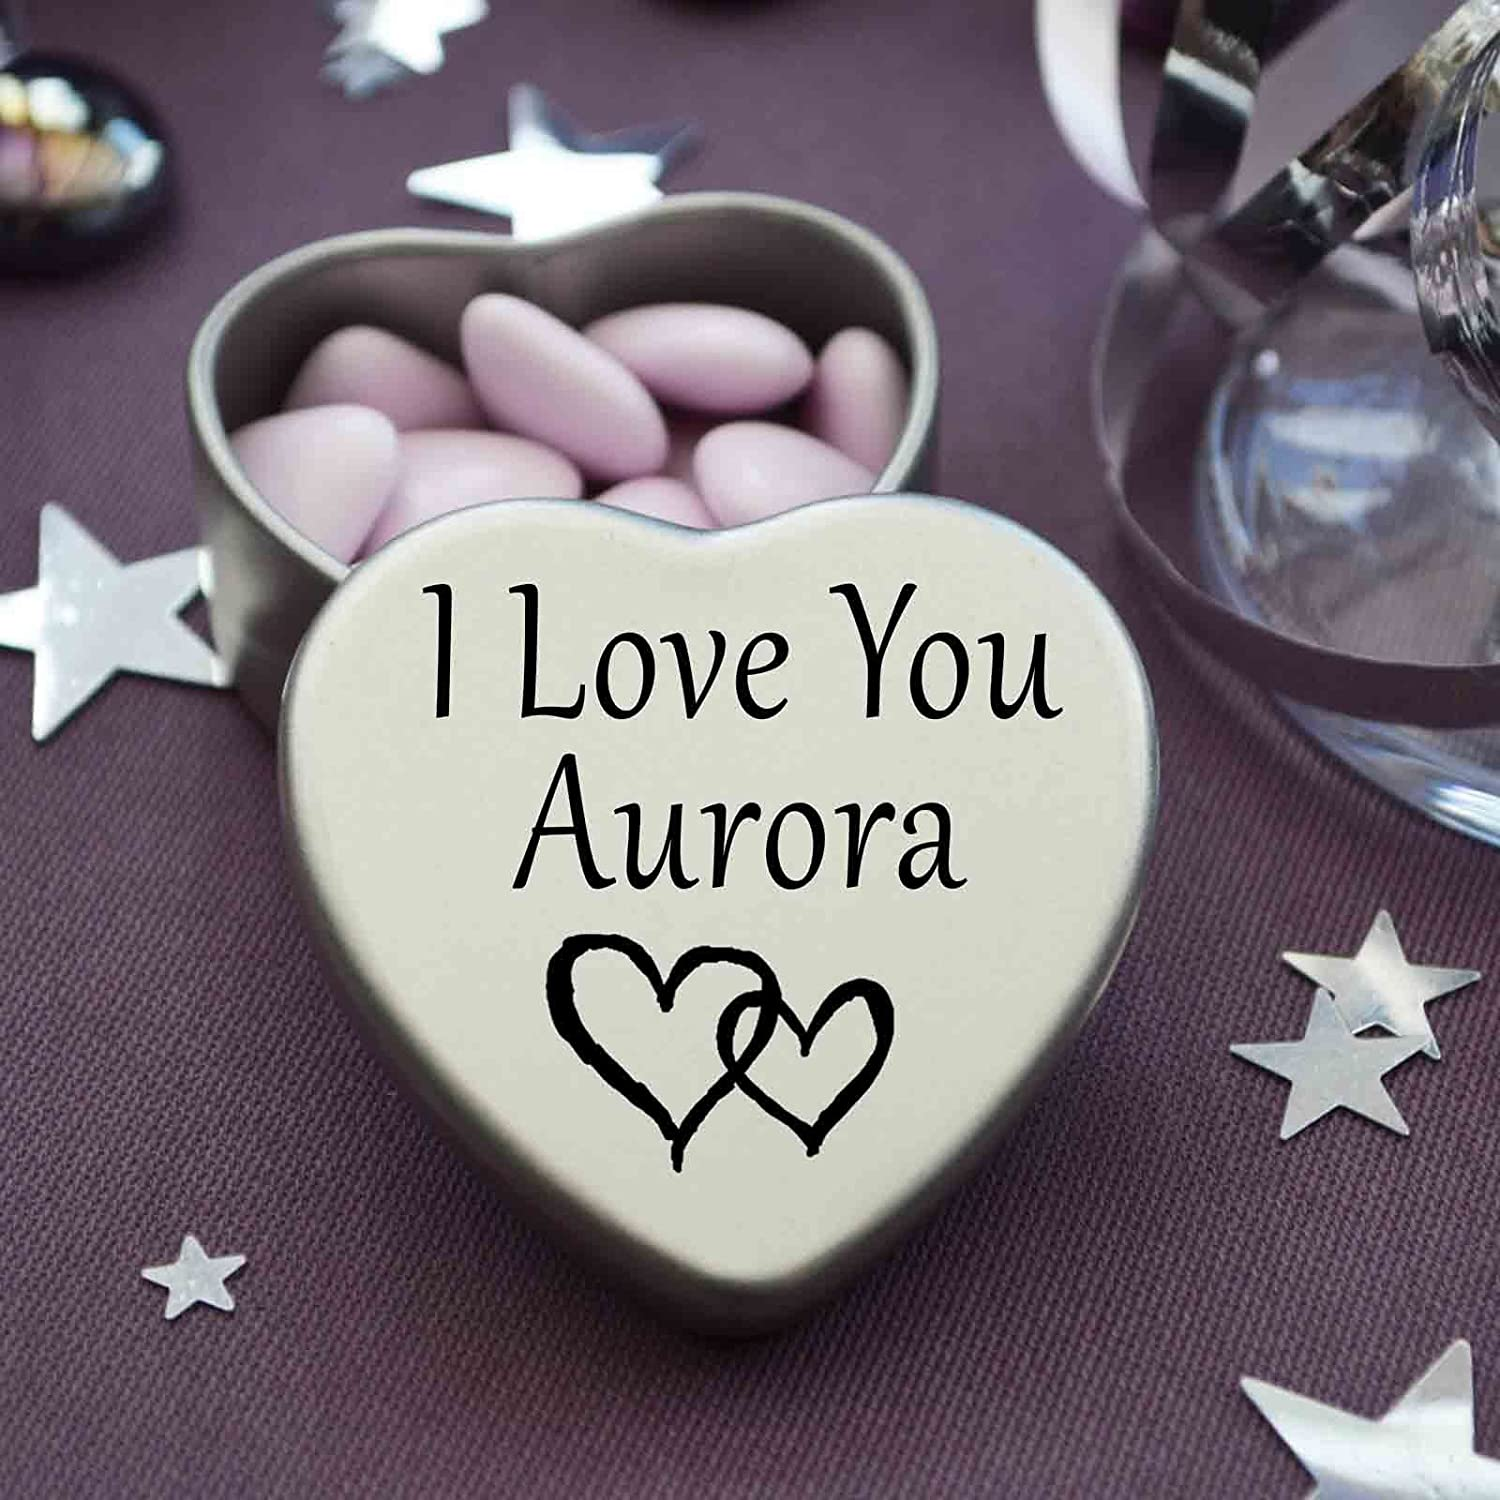 I love you aurora mini heart tin gift for i heart aurora with i love you aurora mini heart tin gift for i heart aurora with chocolates silver heart tin fits beautifully in the palm of your hand thecheapjerseys Gallery